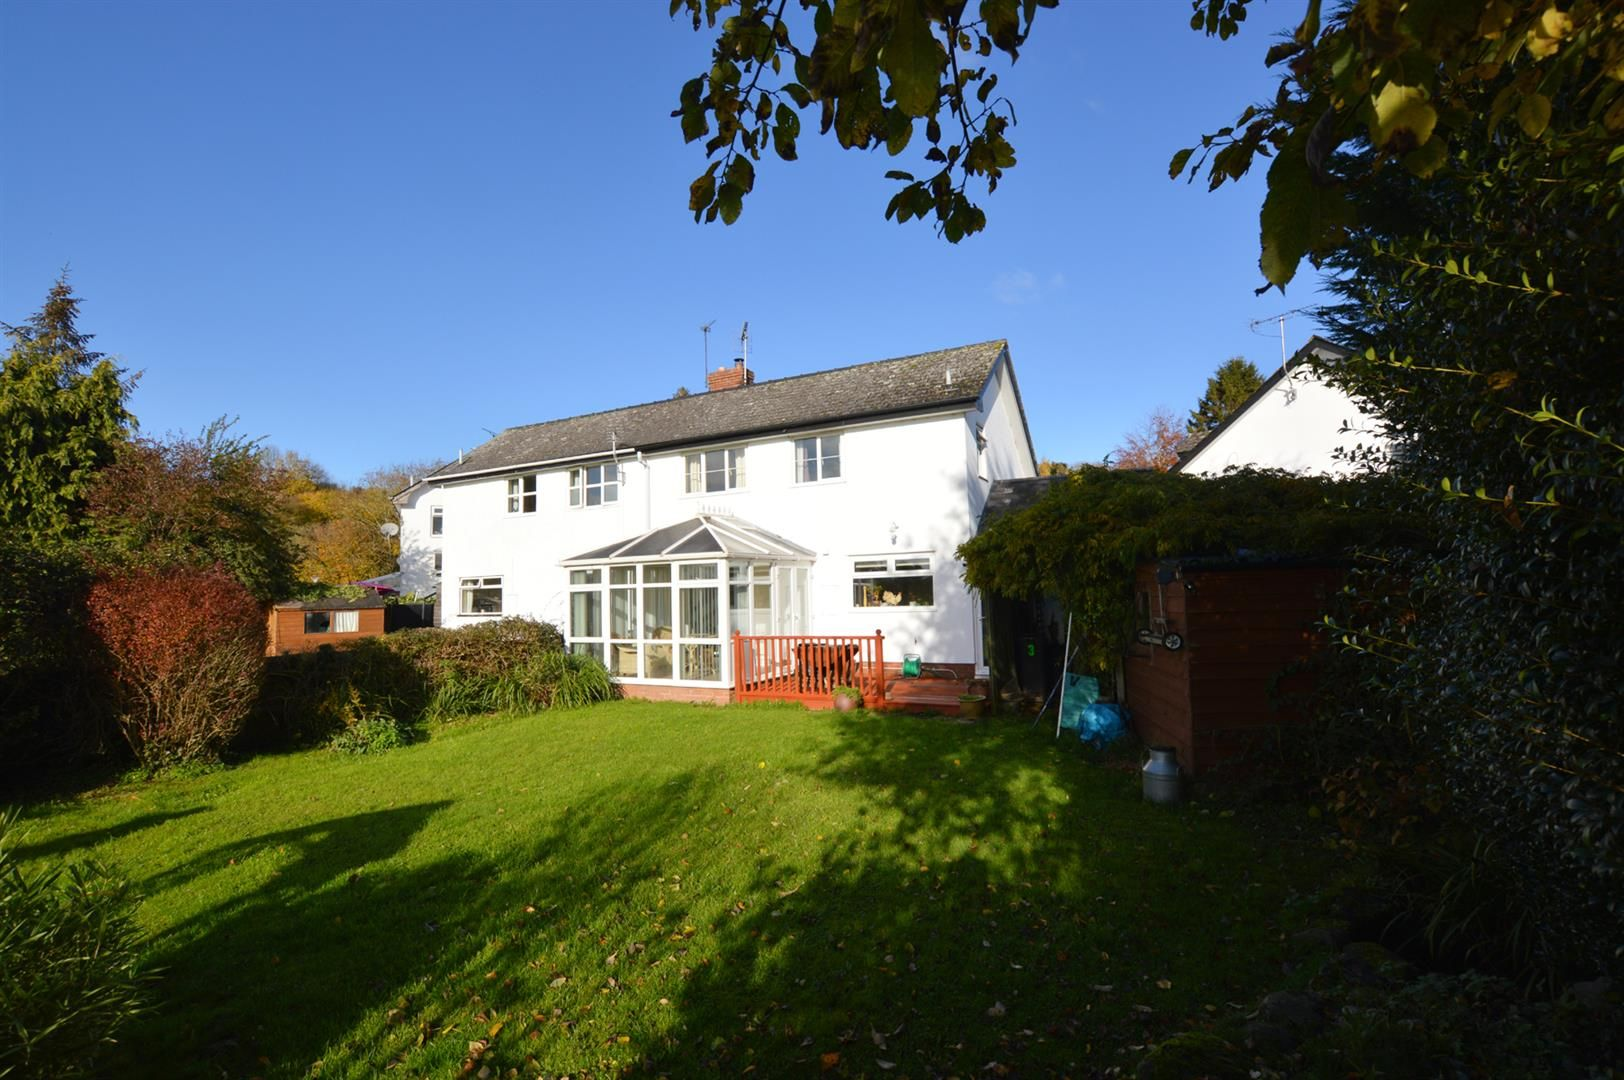 3 bed semi-detached for sale in Dilwyn 10